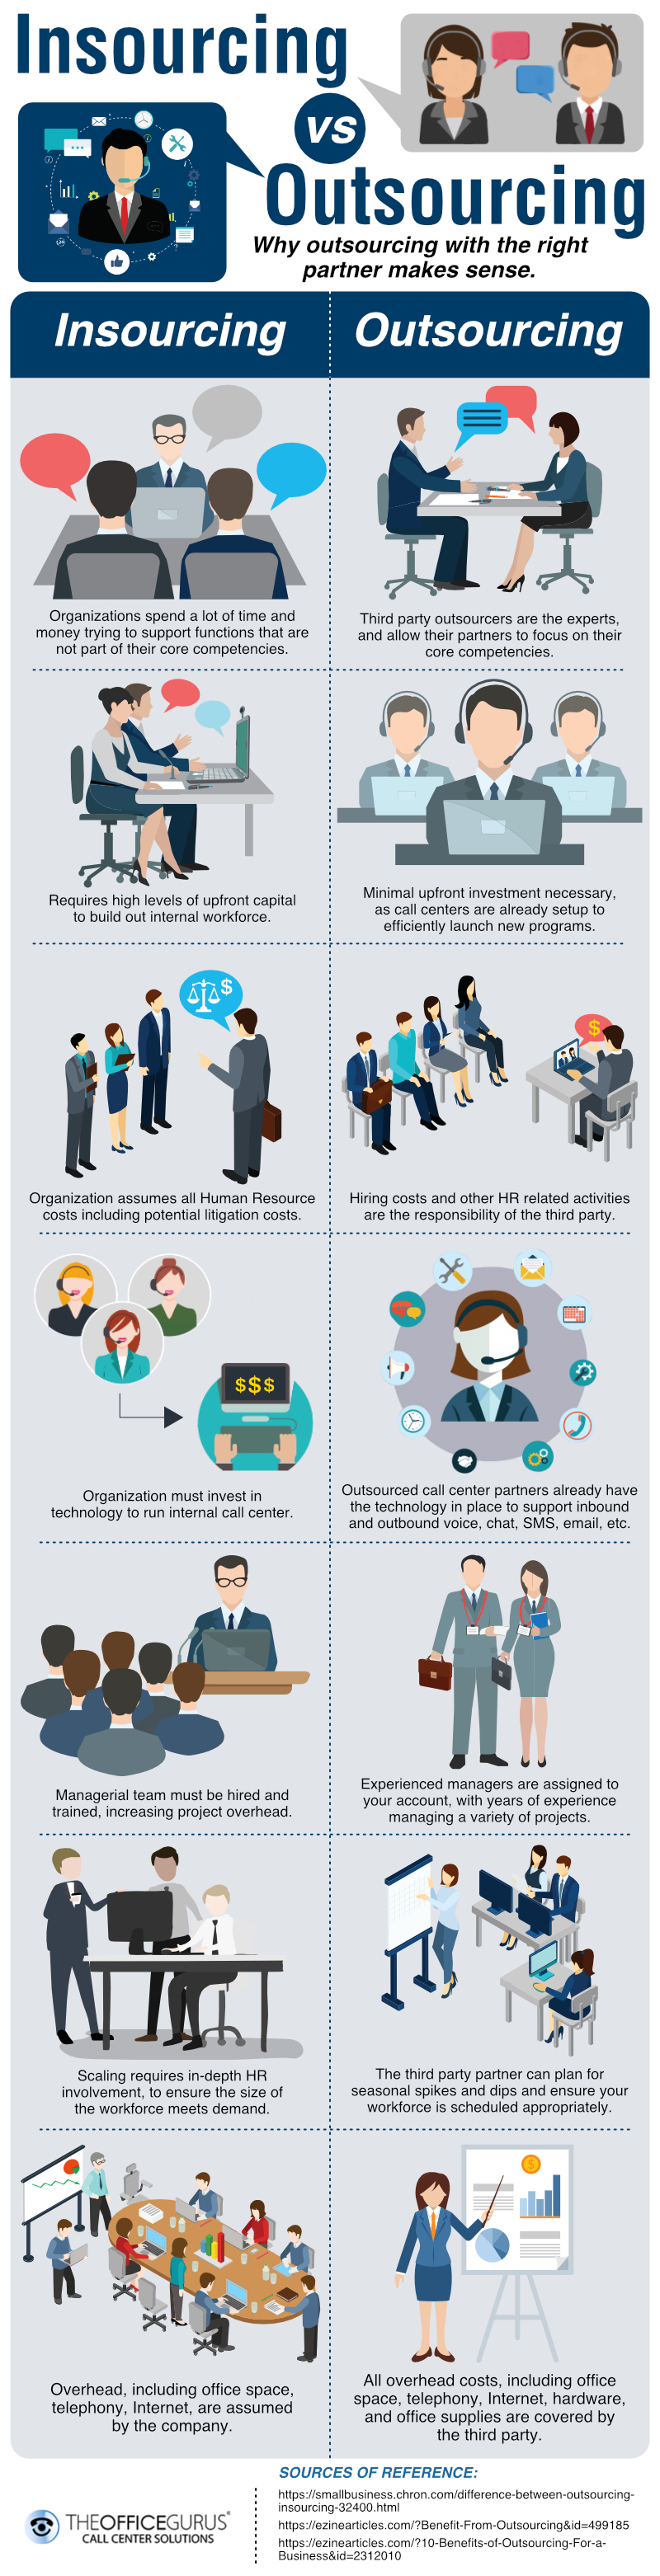 Insourcing vs Outsourcing – Why Outsourcing With The Right Partner Makes Sense